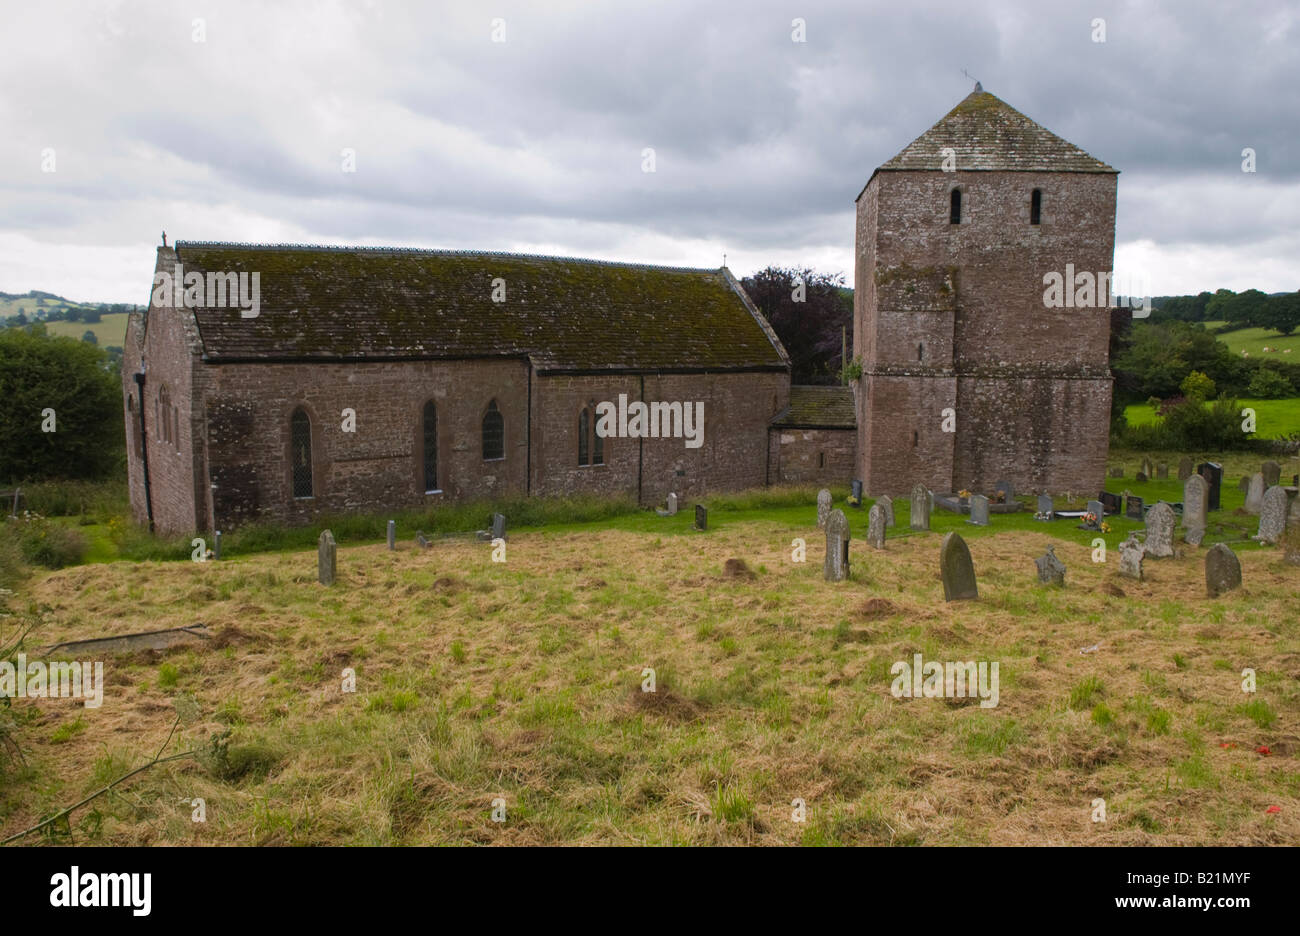 Exterior of St Michaels Church Garway Herefordshire England UK founded by The Knights Templar in the 12th Century - Stock Image